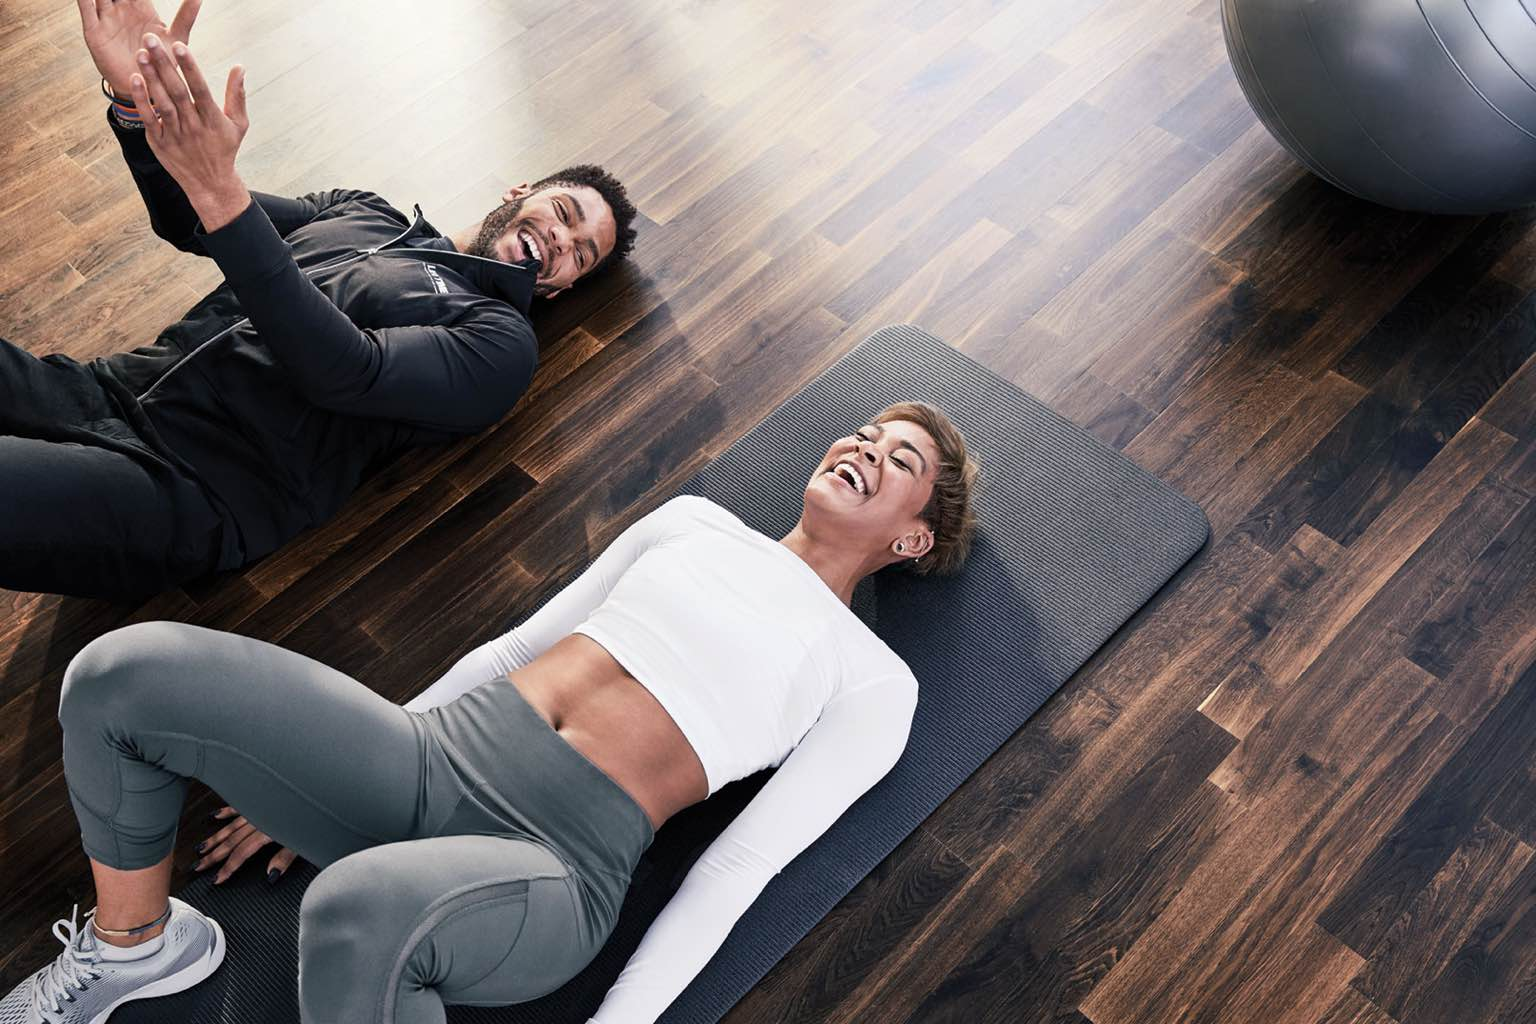 Two people lying on yoga mats laughing in a group fitness studio